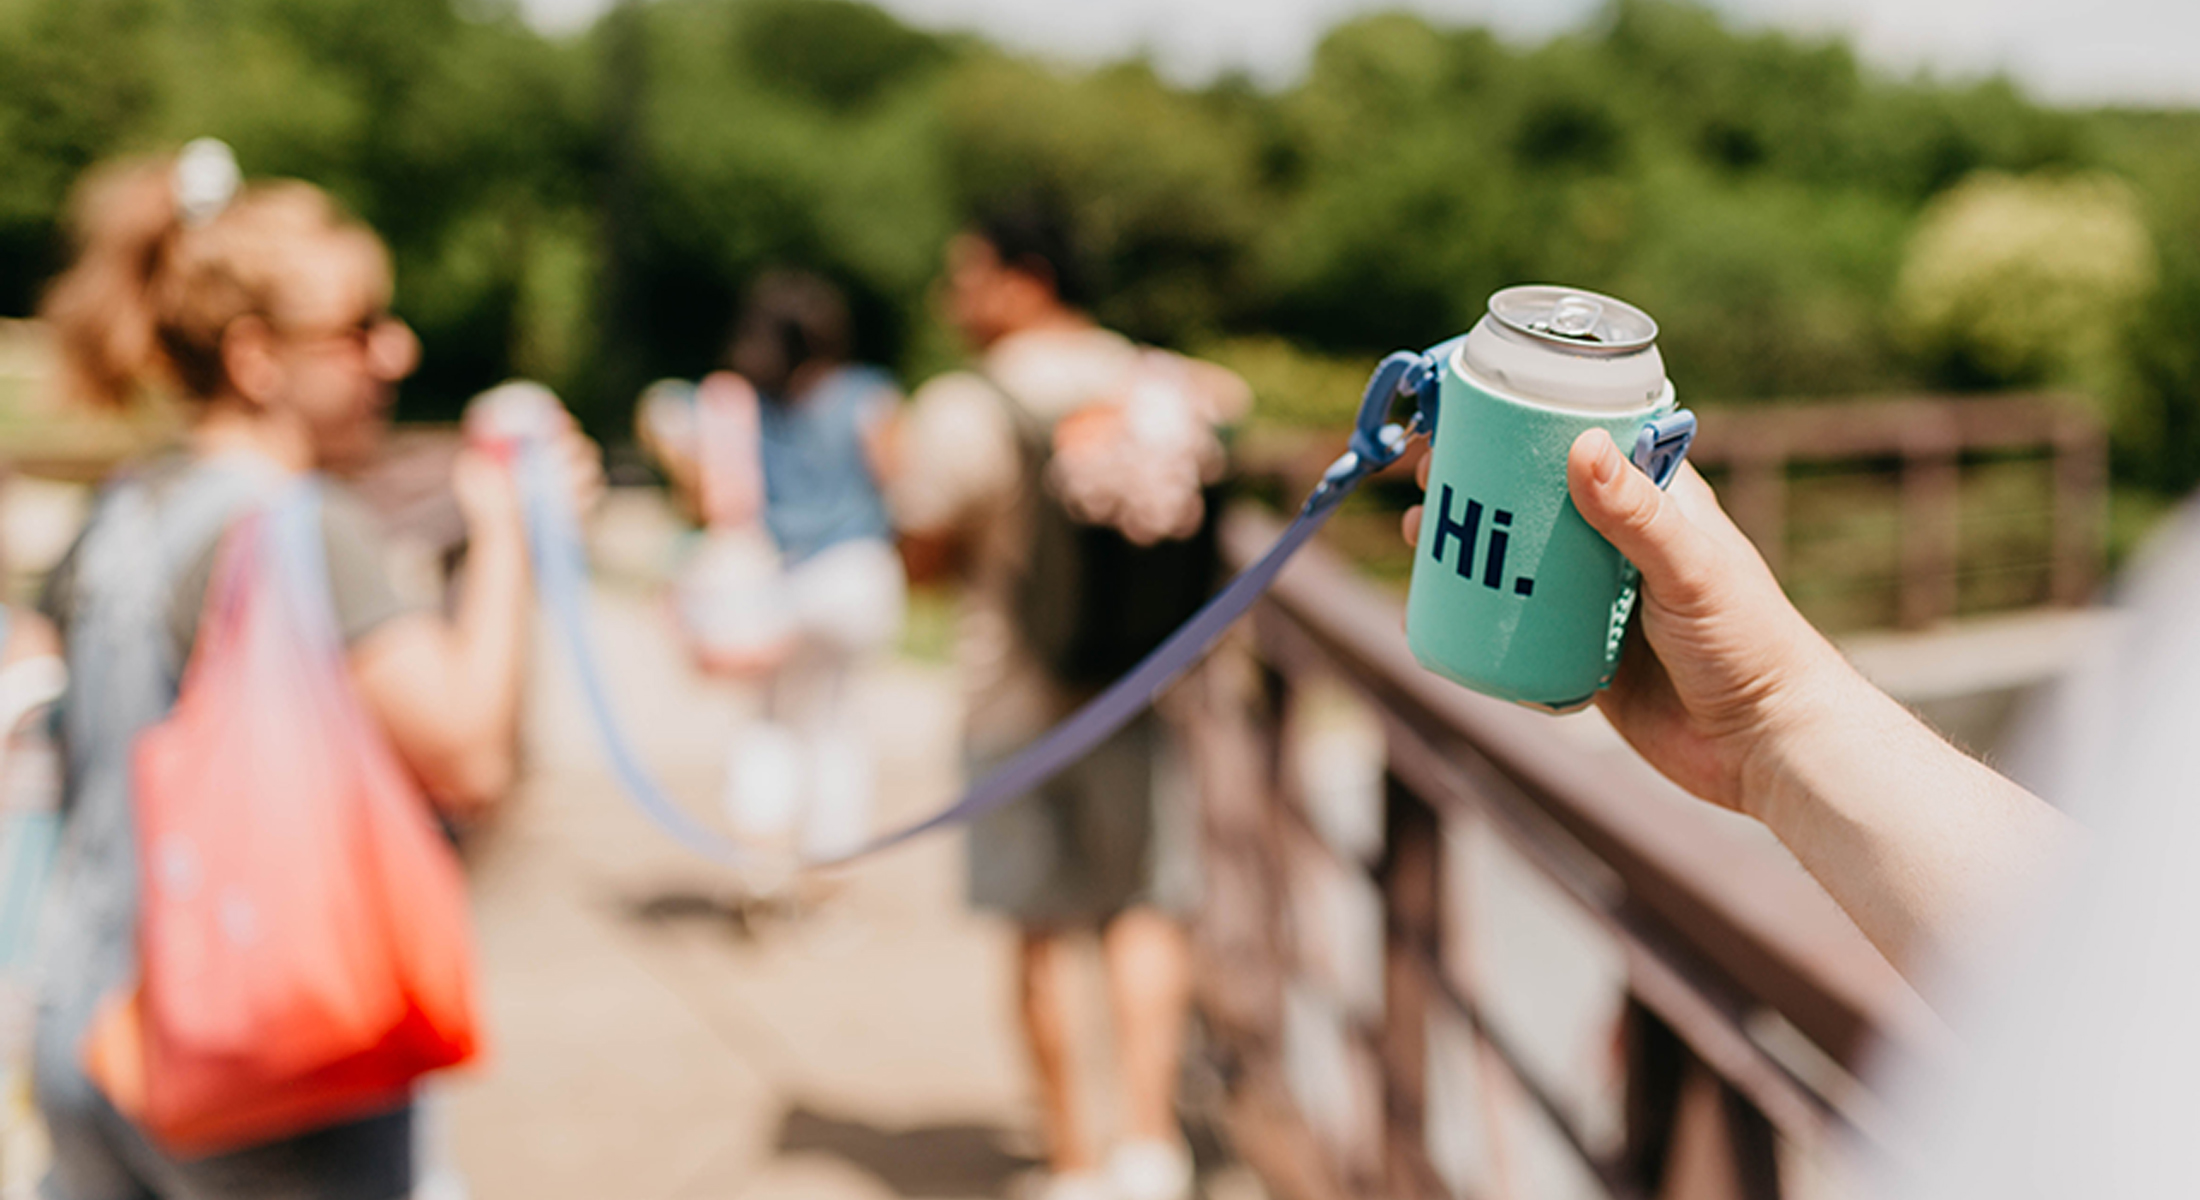 Say Hello To The Savior Of The Summer. Introducing The: DRINK-A-LINK